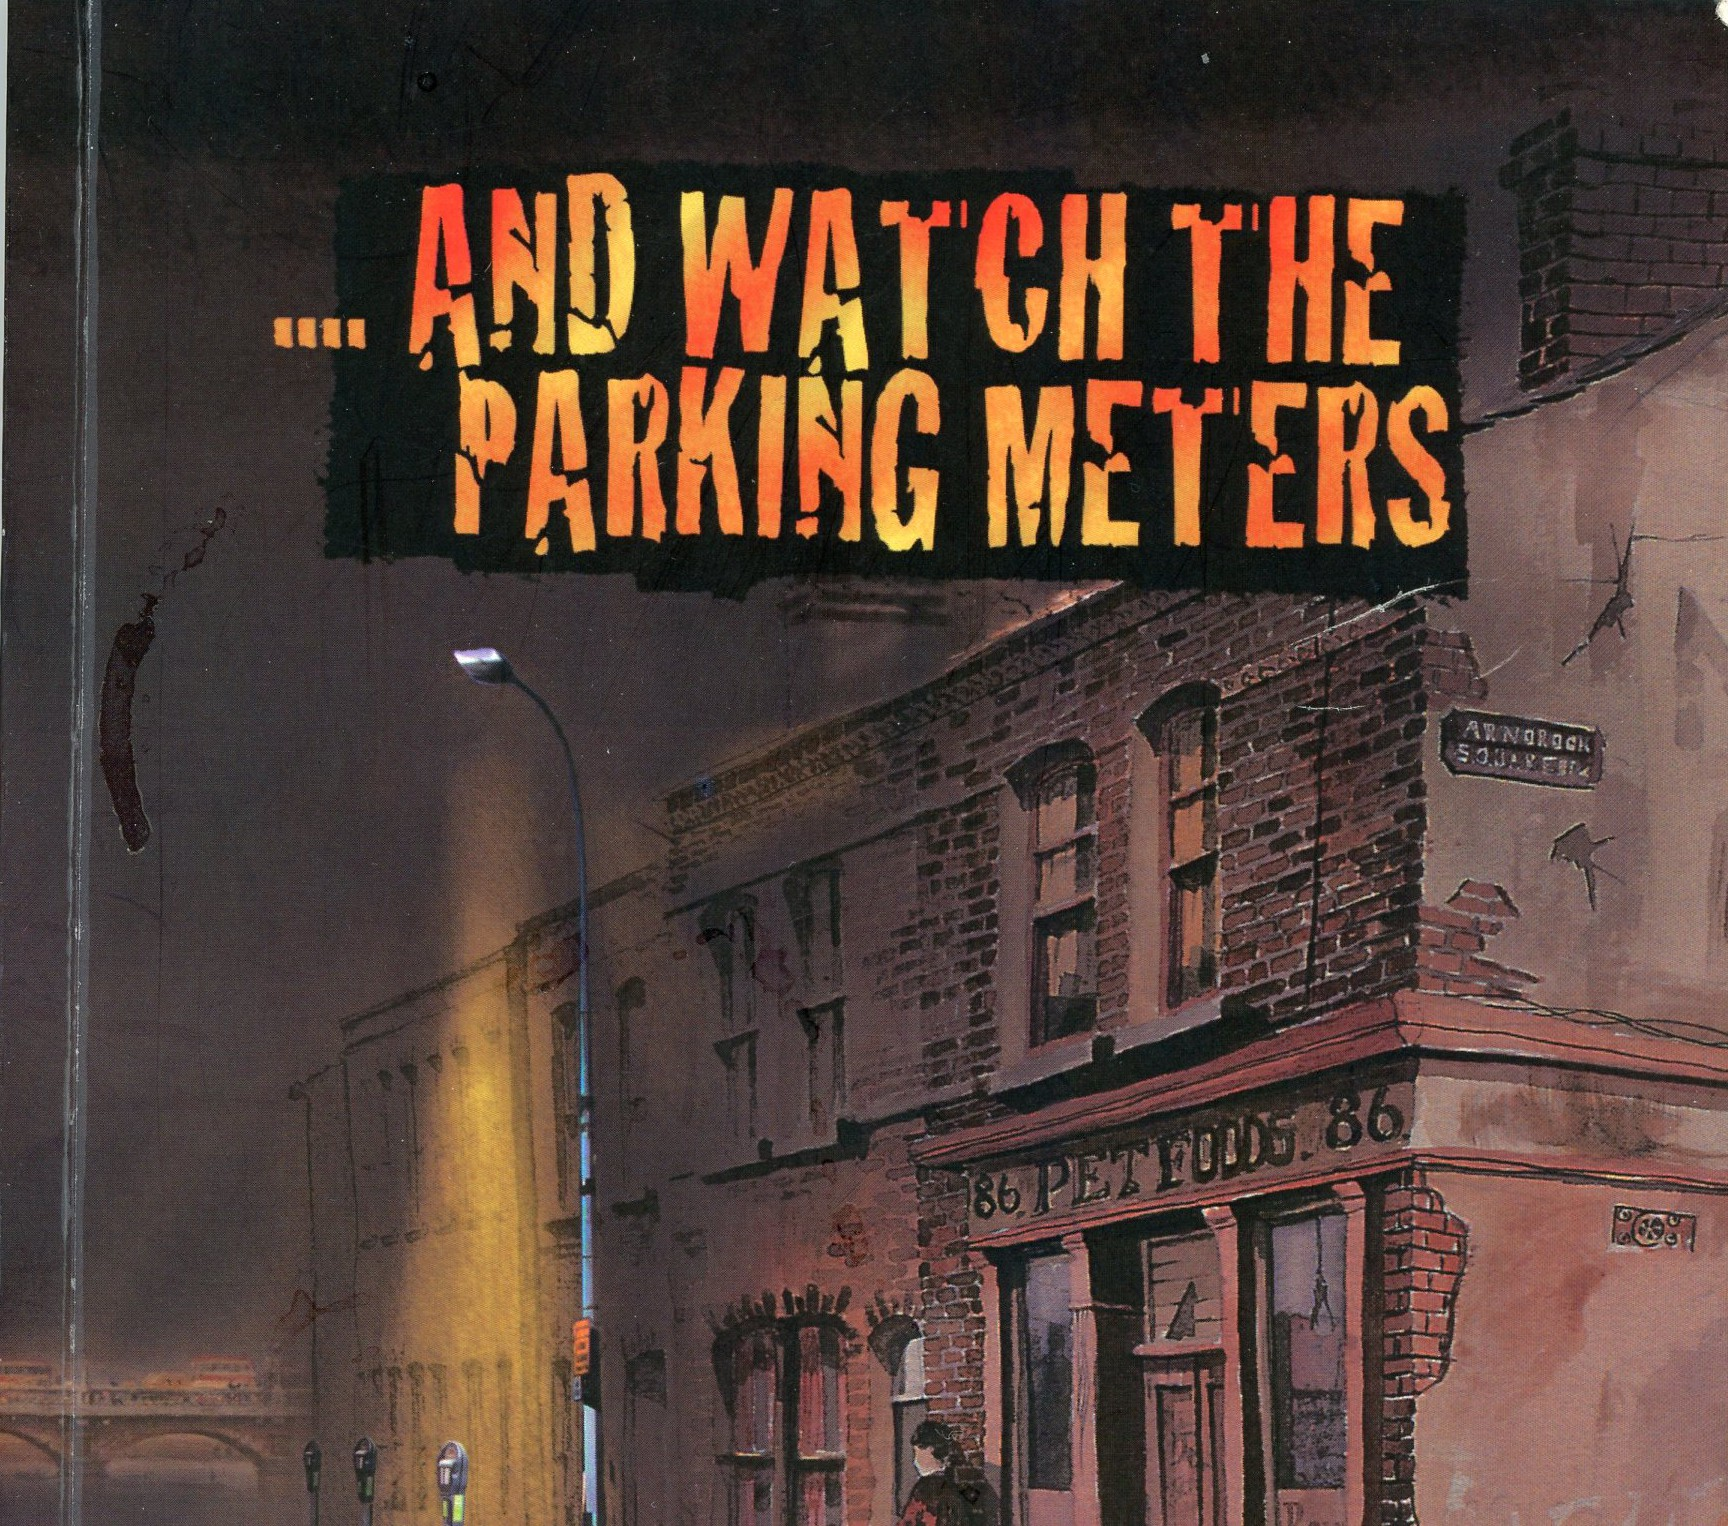 BOOK REVIEW: And Watch The Parking Meters